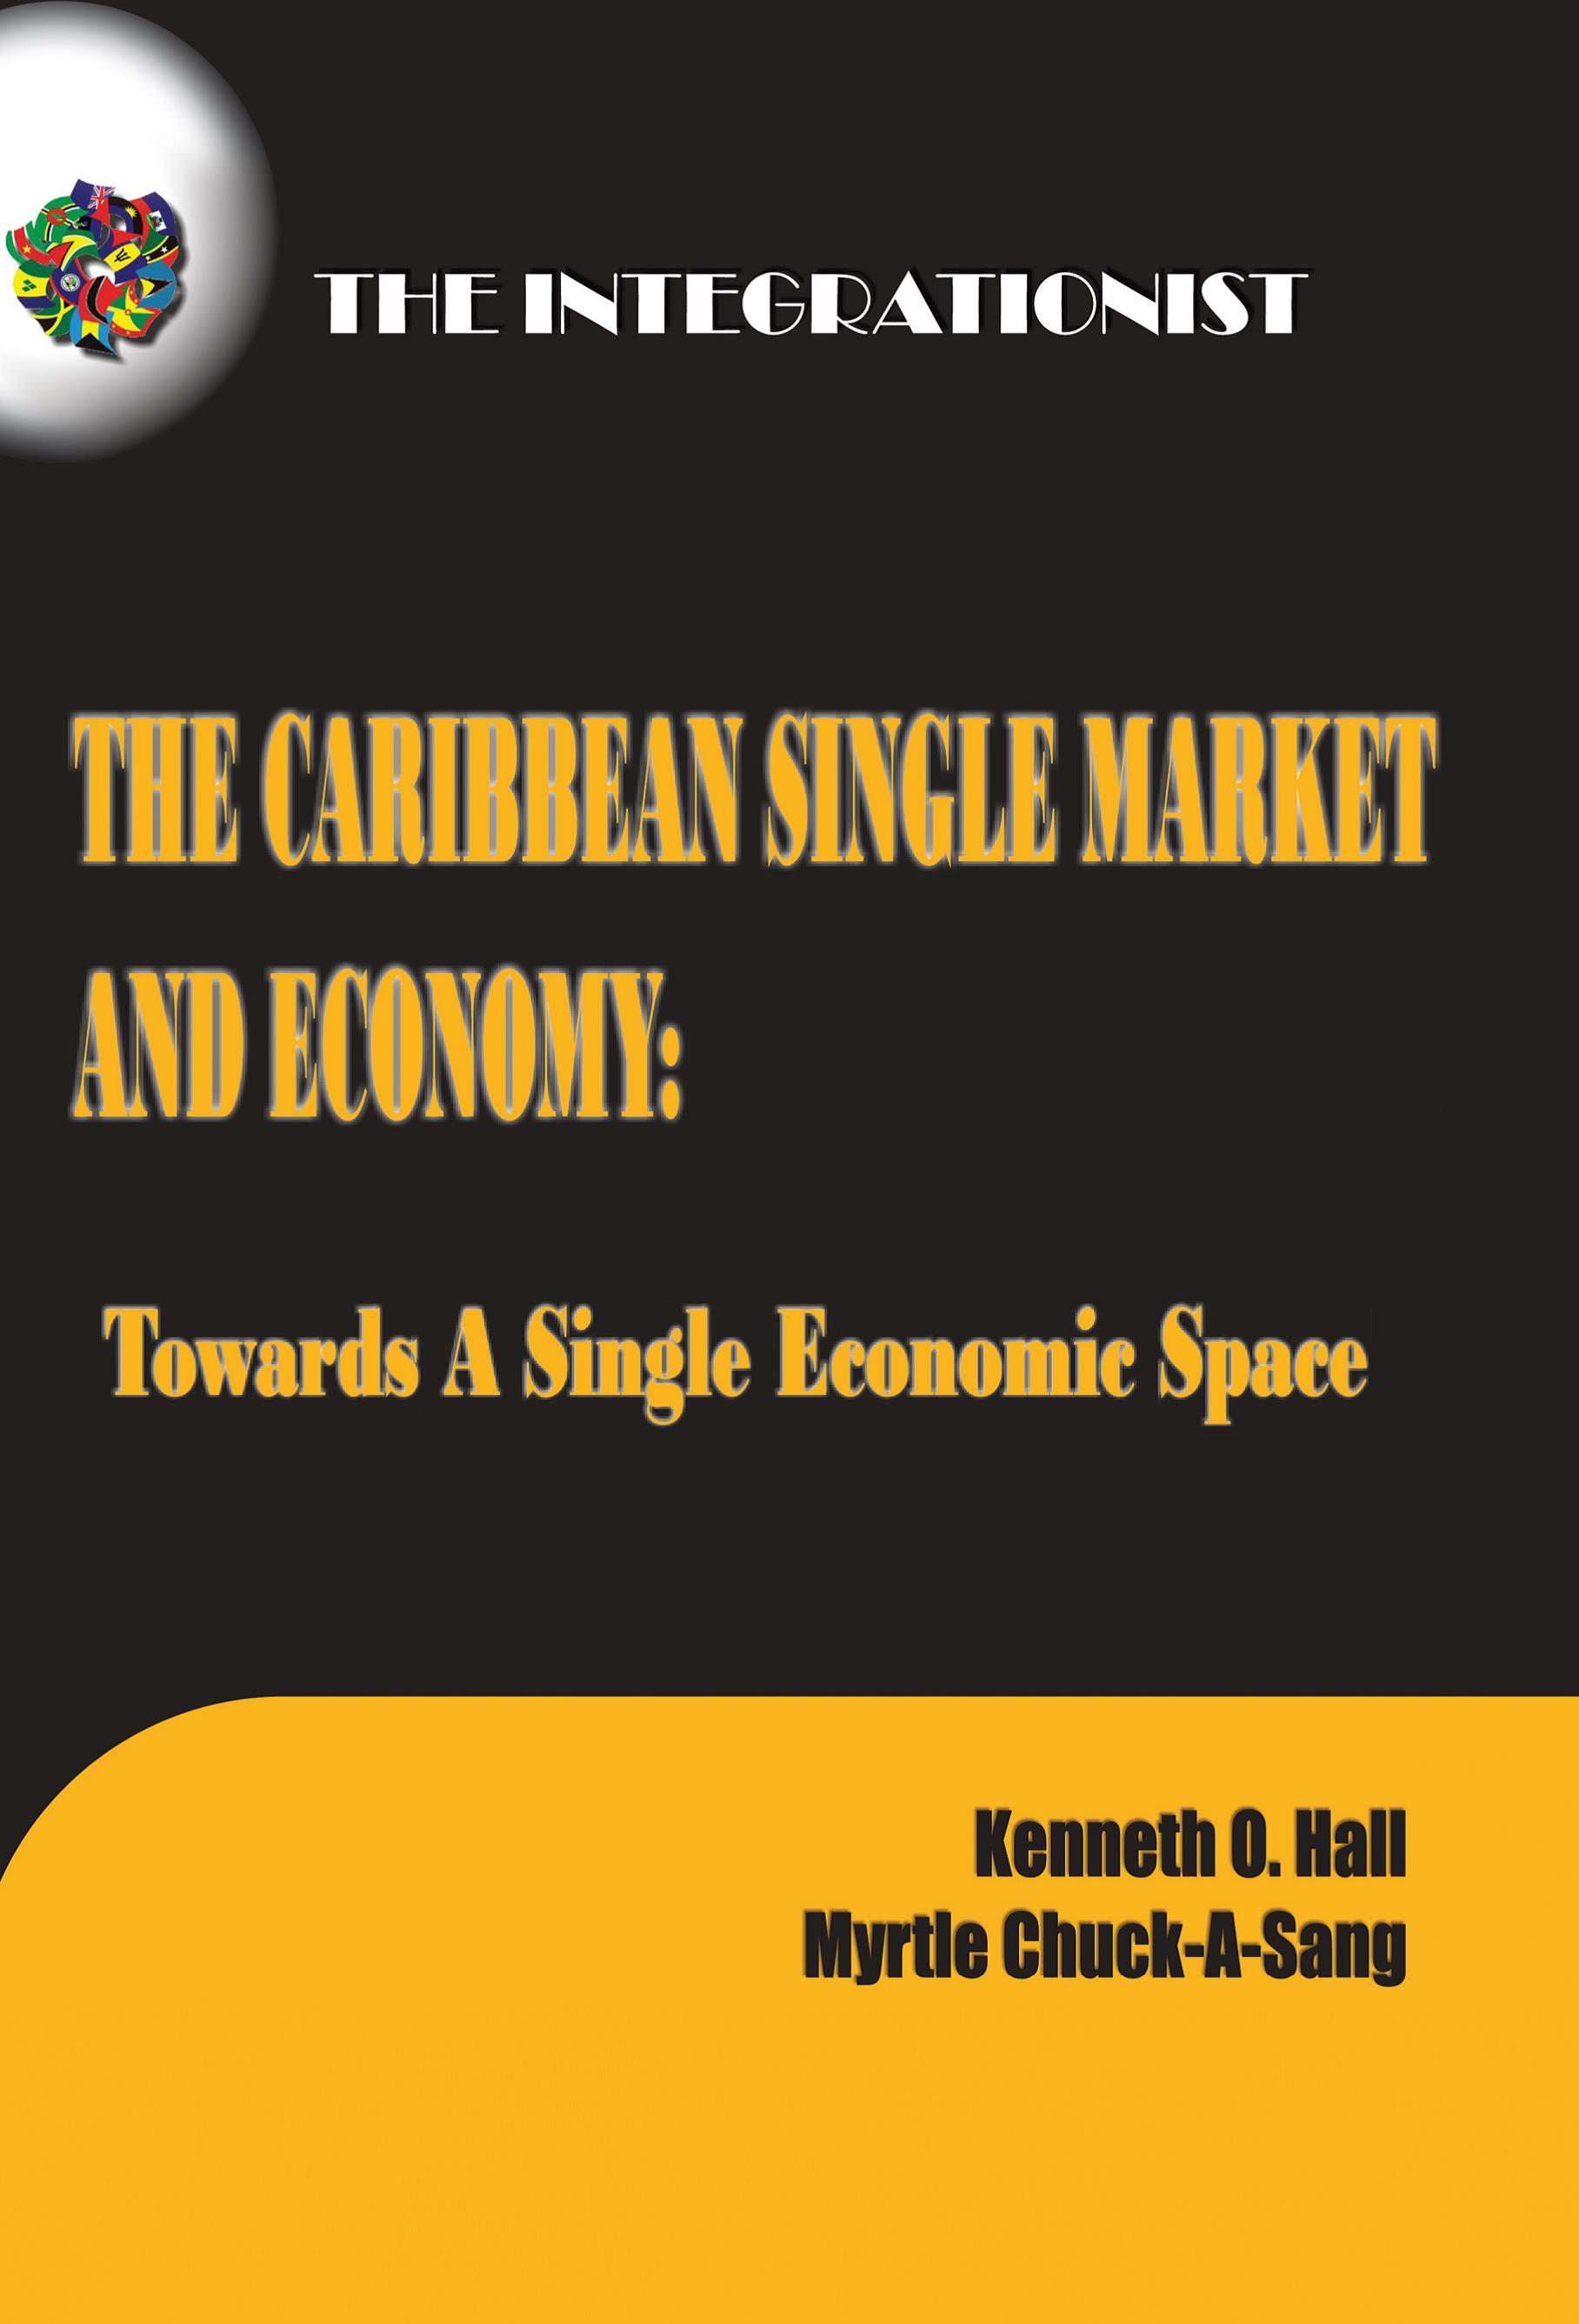 caribbean single market economy Essentially the political leadership views the caribbean single market and economy (csme)  globalisation, how appropriate/strong a policy response is this for the.